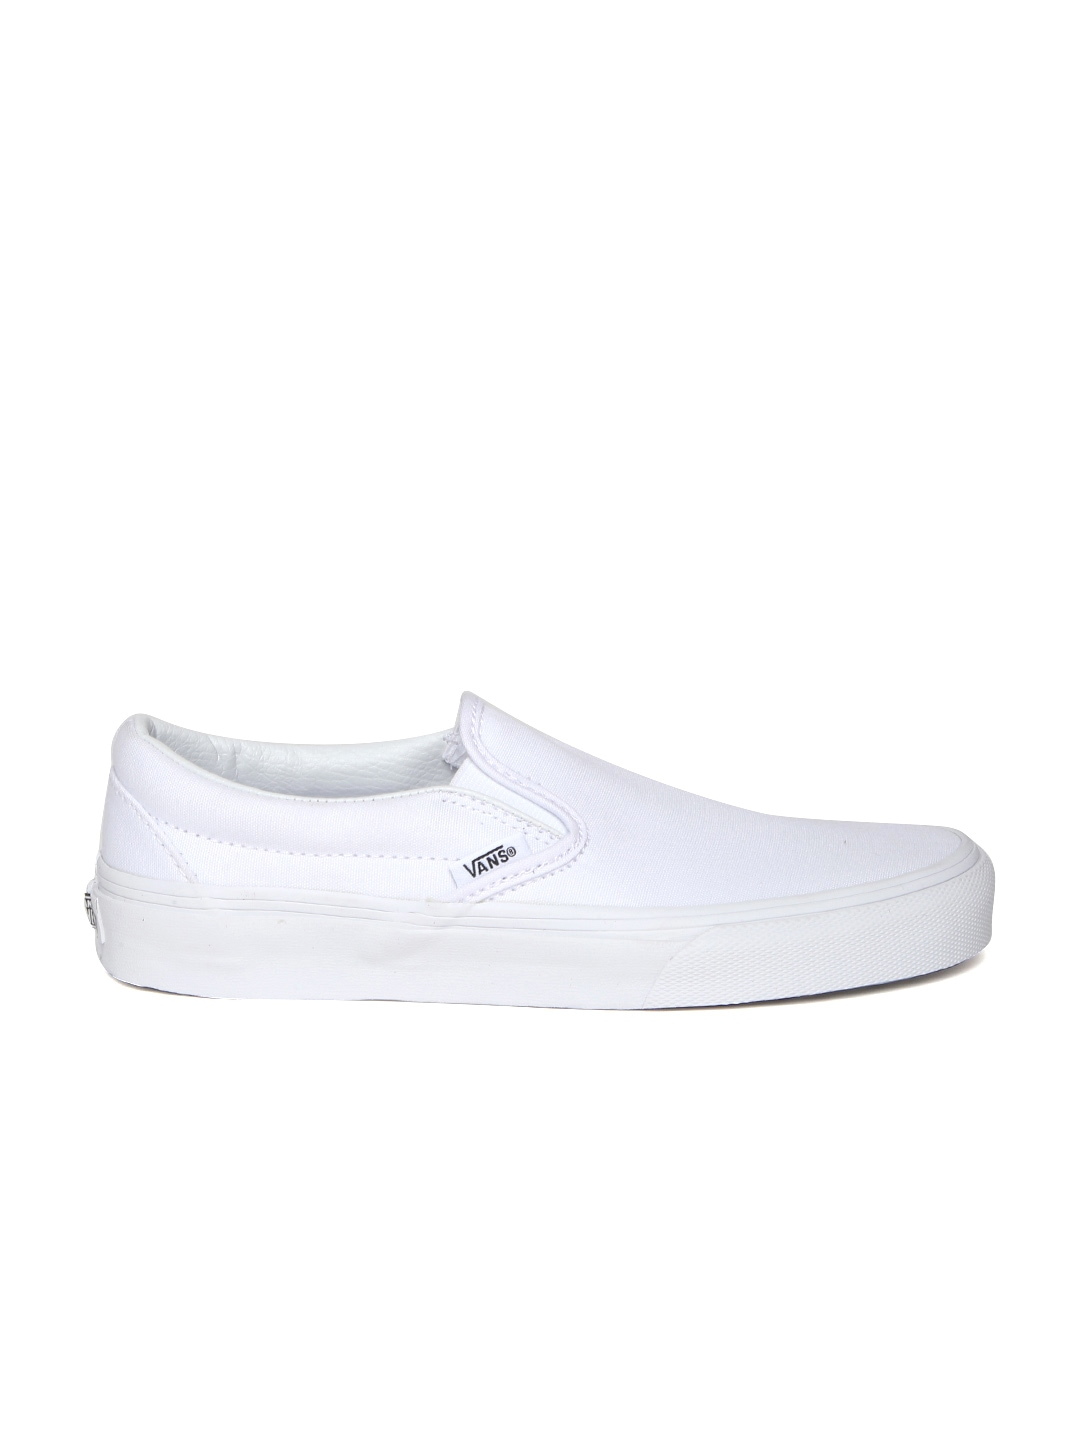 myntra vans unisex white canvas shoes 870179 buy myntra